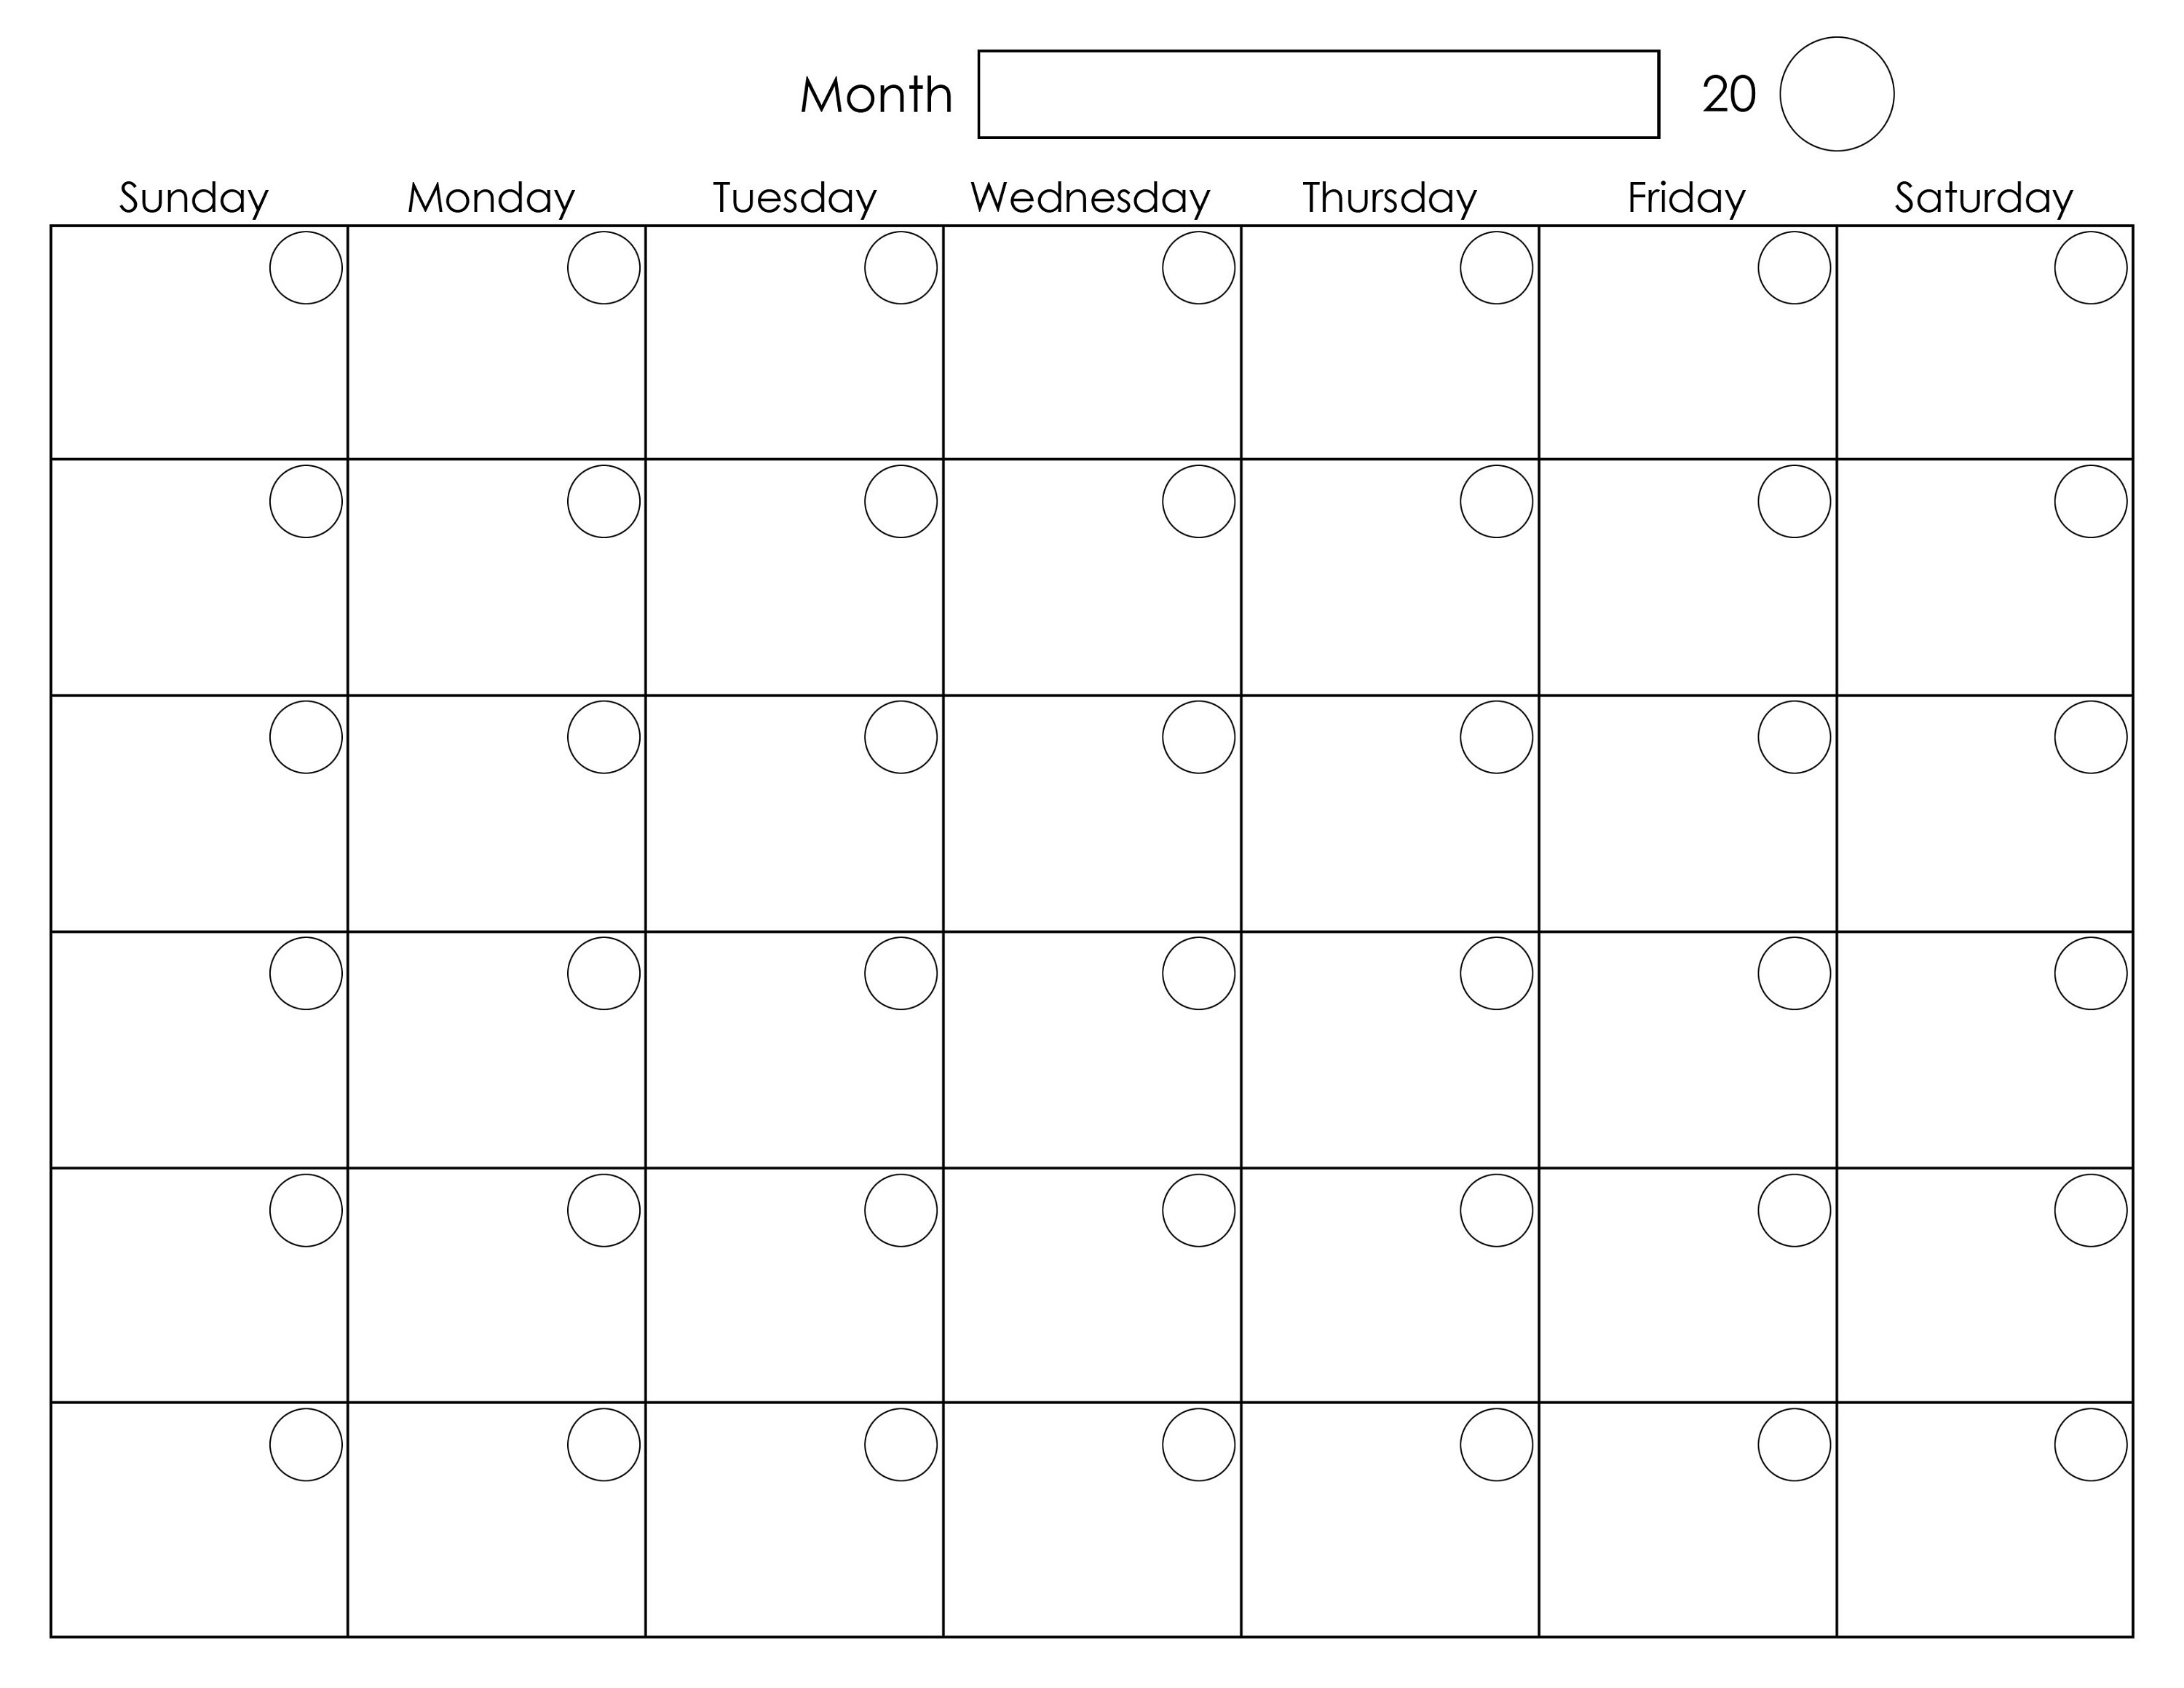 Calendar Monthly Printable : Printable blank monthly calendar activity shelter